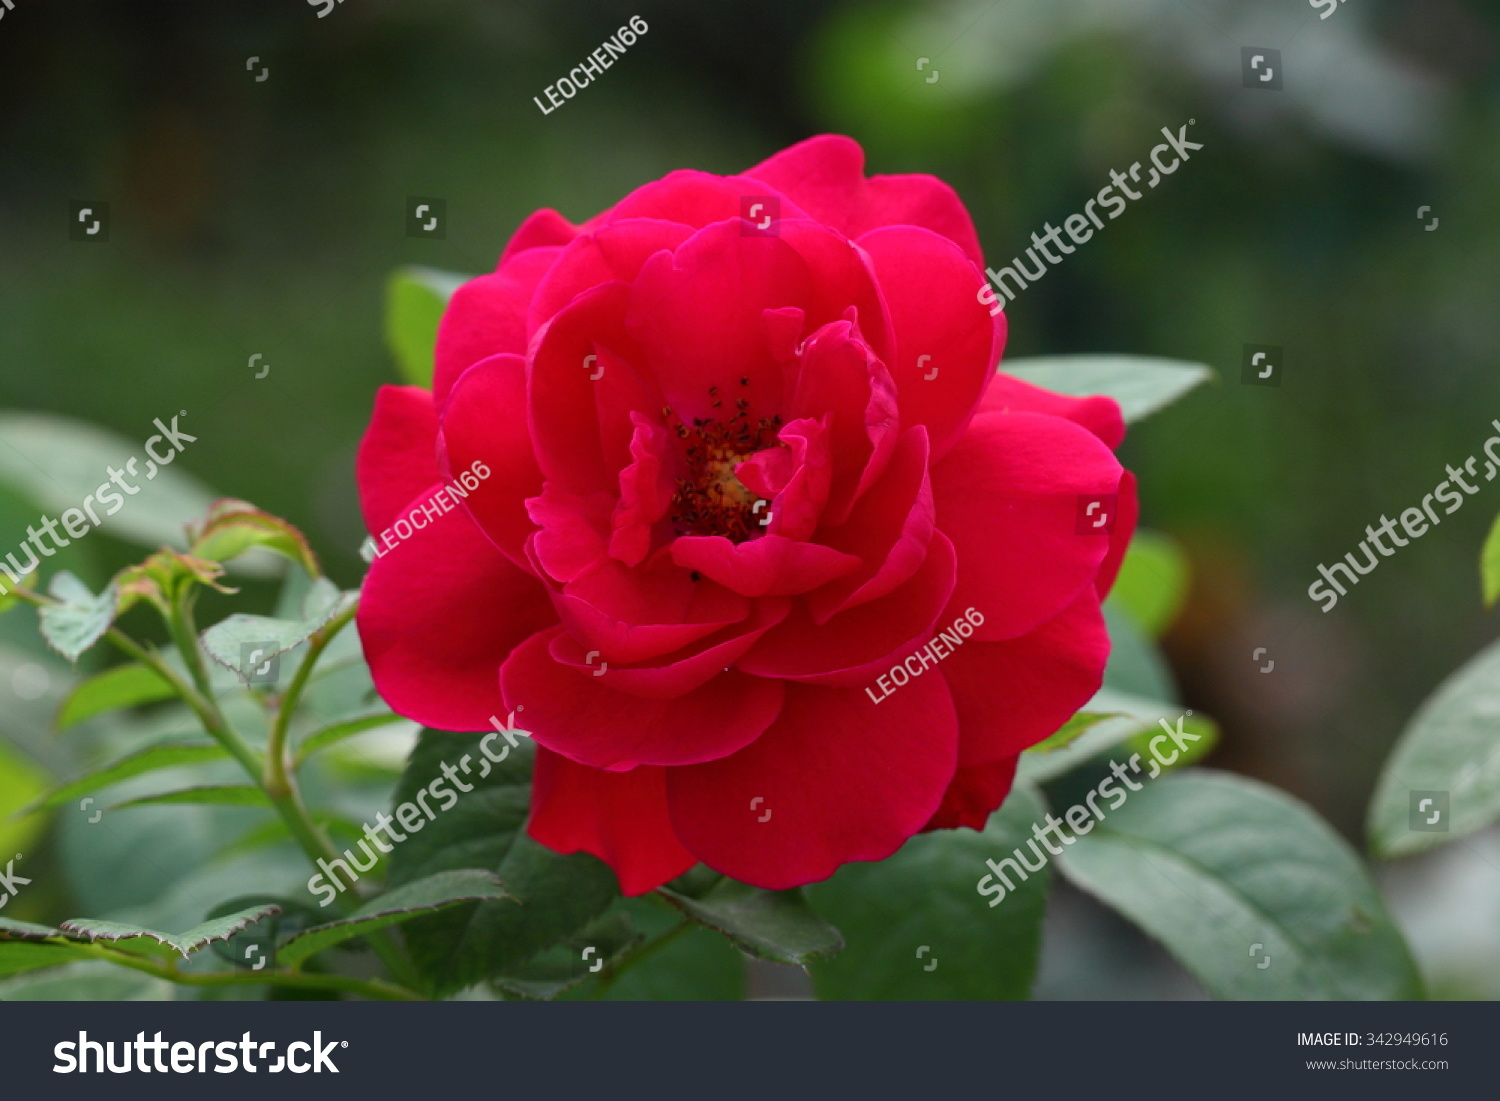 Beautiful rose flower garden rose stock photo edit now 342949616 beautiful rose flower in the gardenrose izmirmasajfo